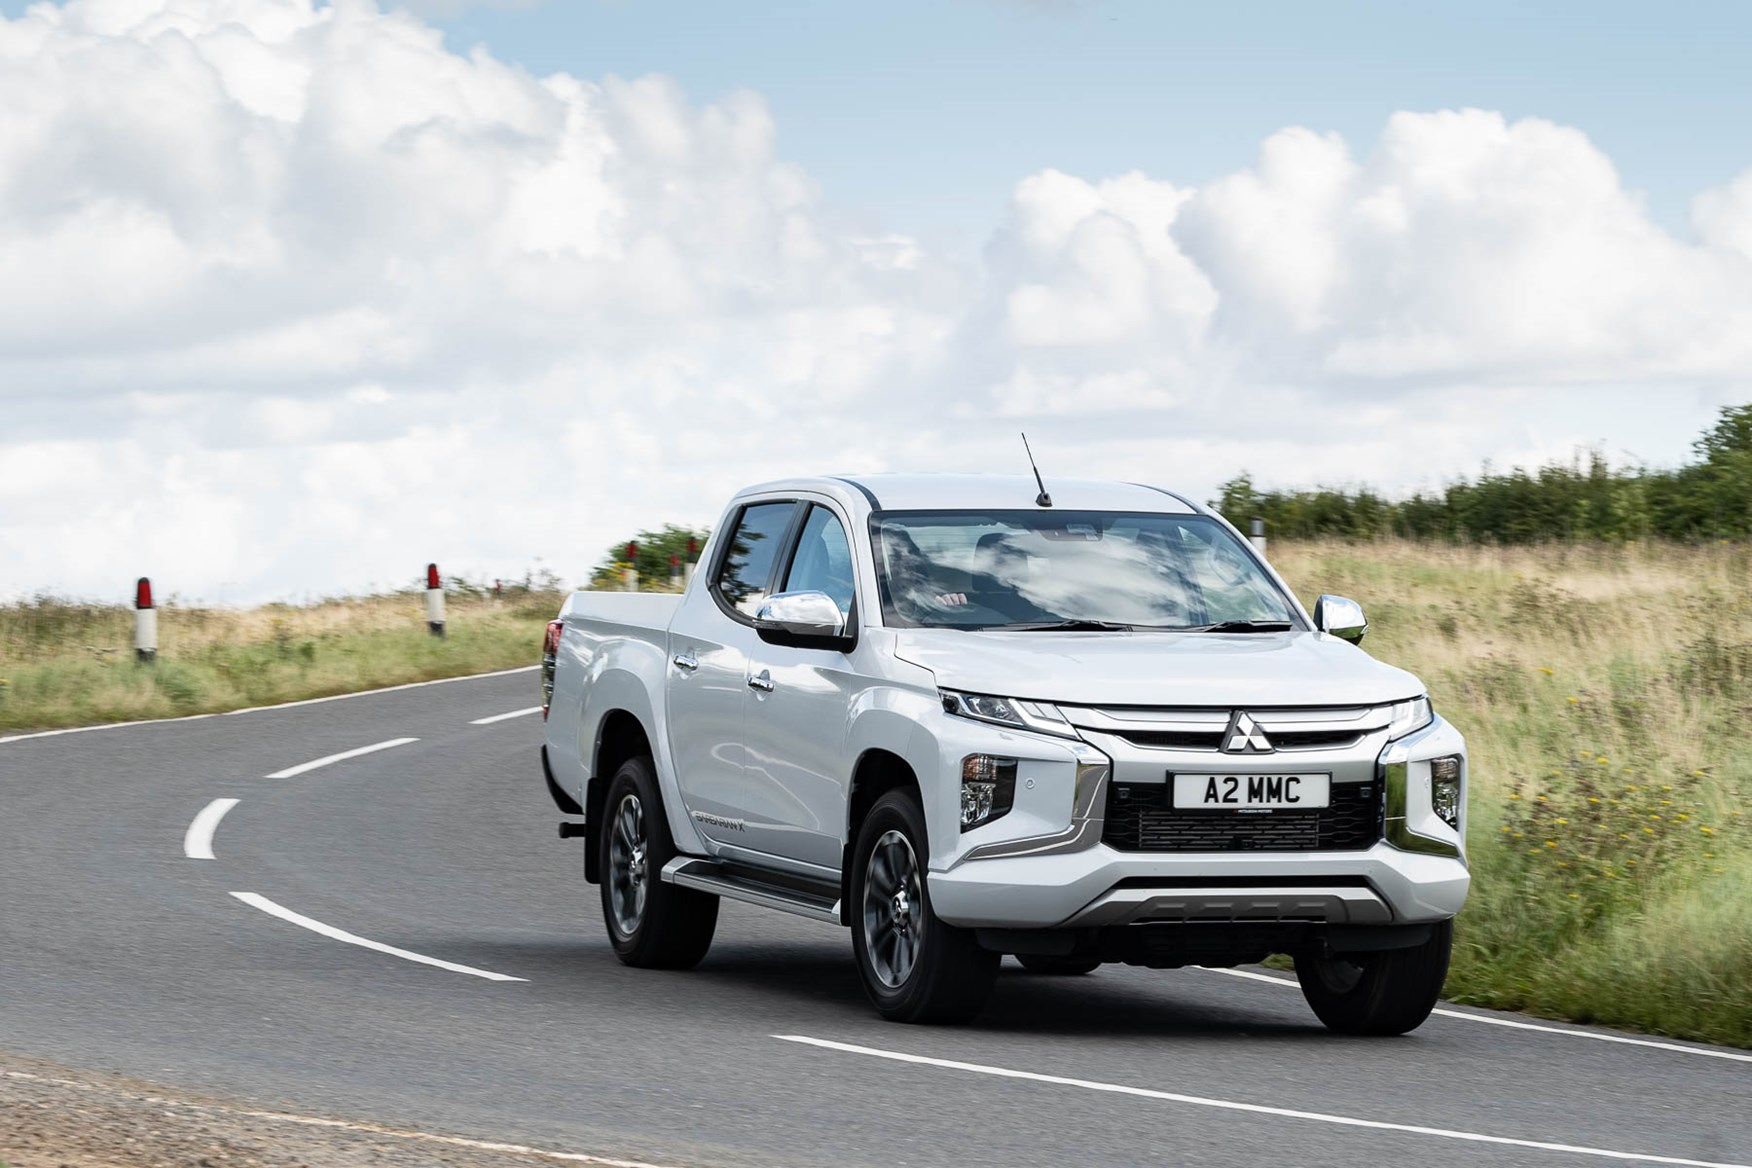 2019 Mitsubishi L200, Barbarian X cornering, UK. Diamond White